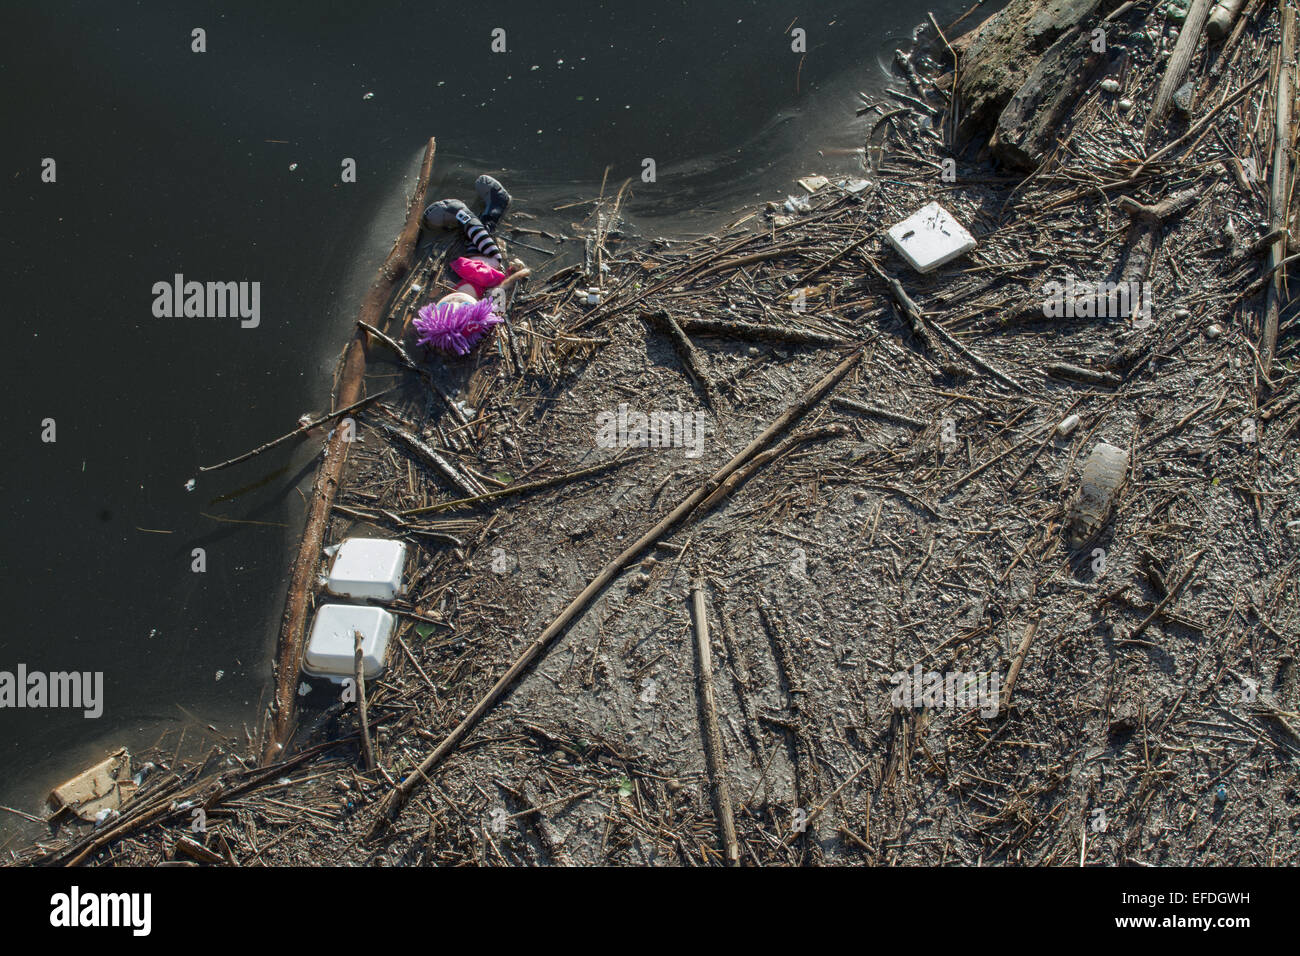 GLASGOW, SCOTLAND - 1 FEBRUARY 2015: Brightly coloured doll washed up on the banks of the River Clyde with other - Stock Image